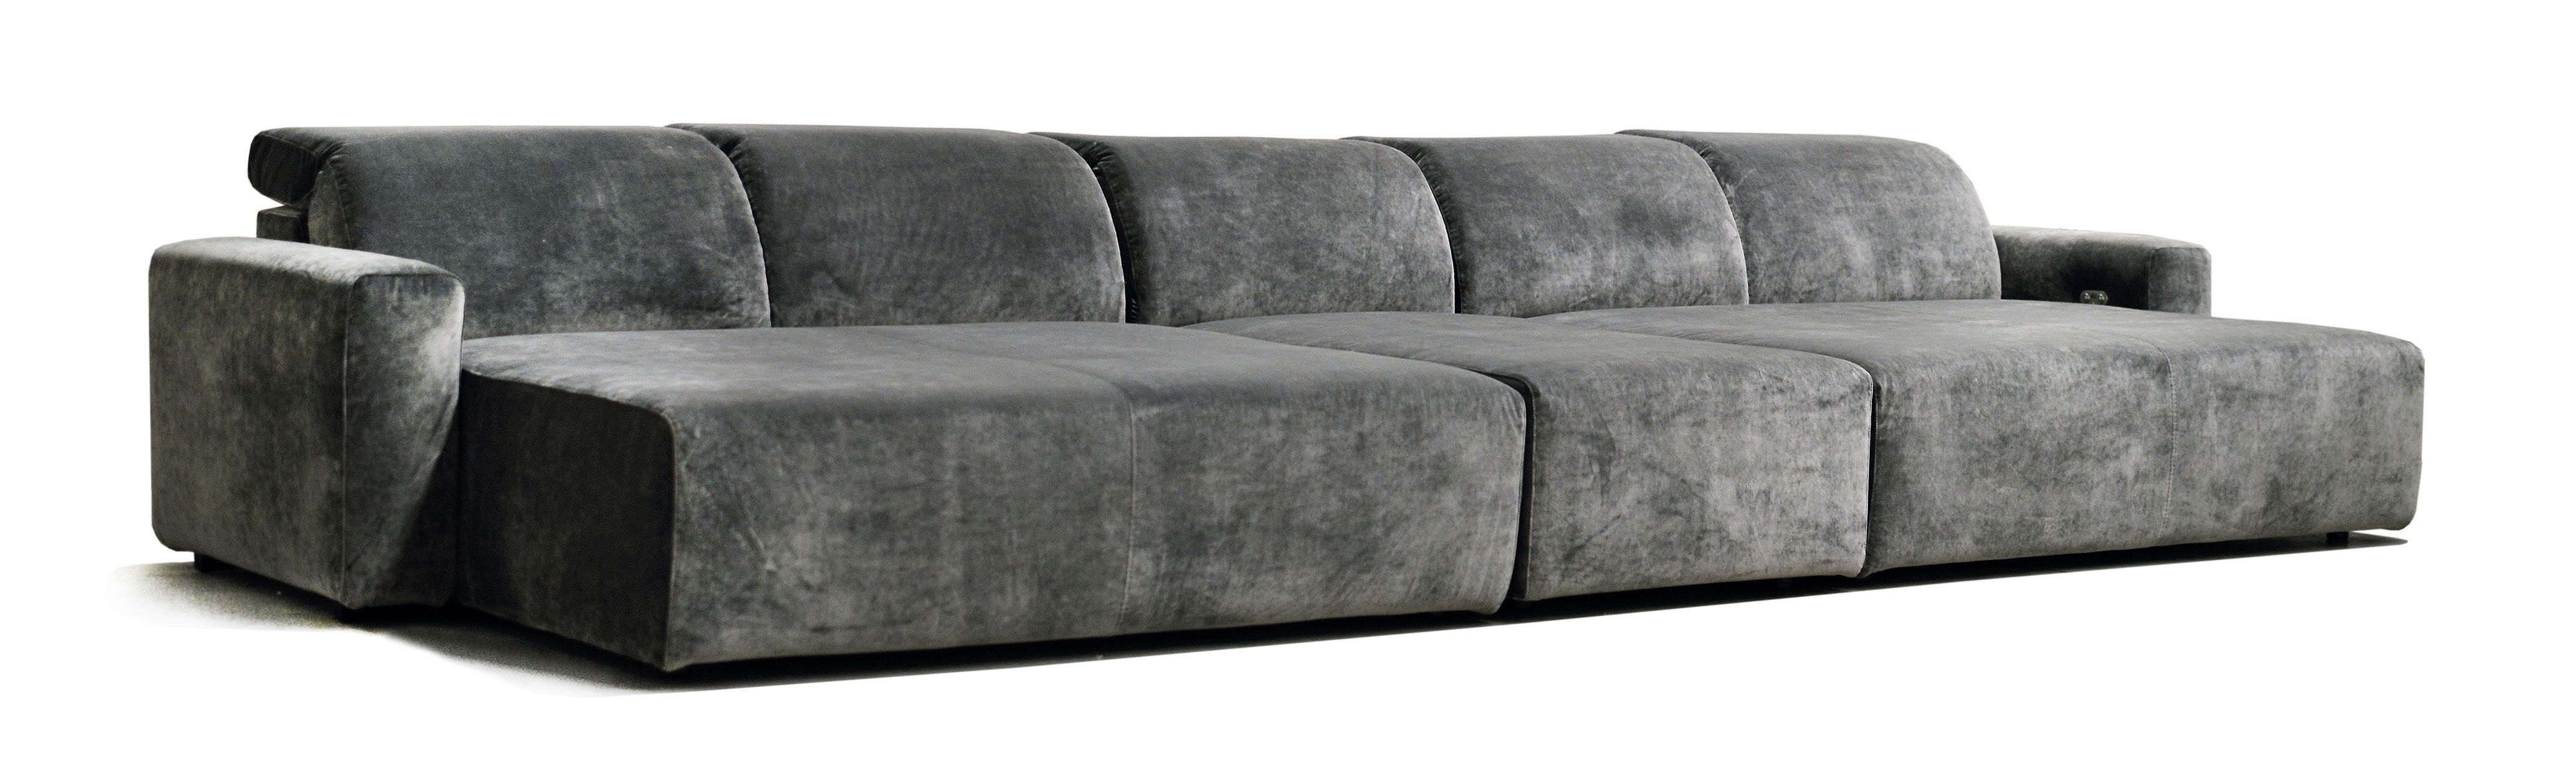 home cinema room chairs. large cinema daybed, grey velvet home seating, theatre seating room chairs